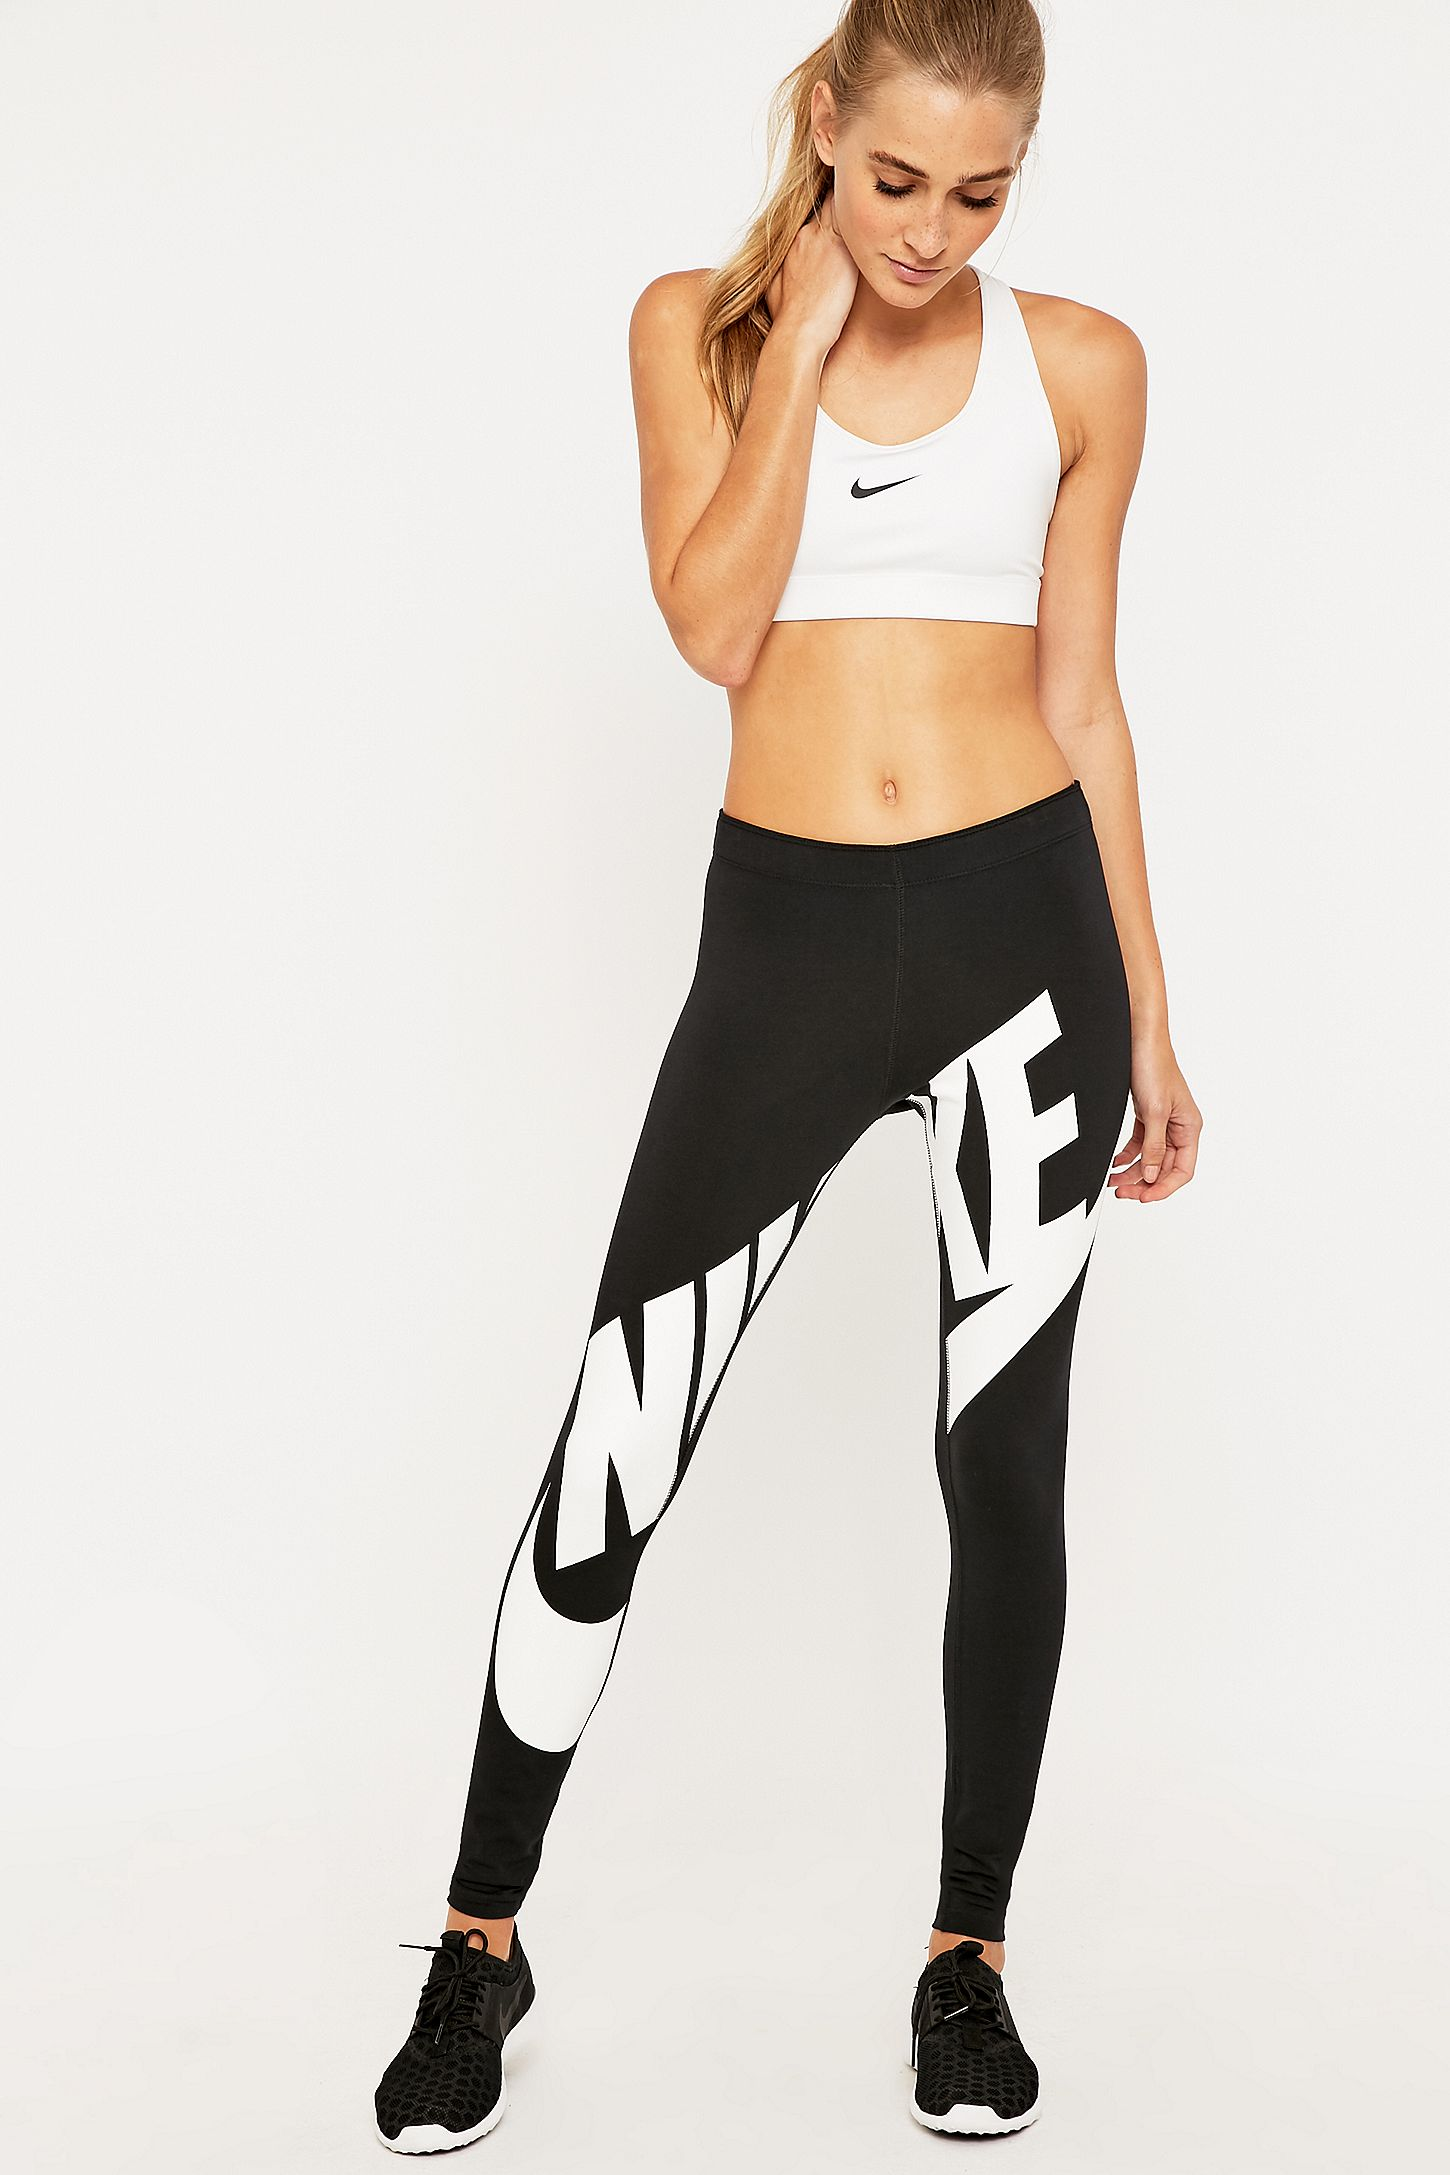 88075b7248351 Nike Leg-A-See Exploded Leggings | Urban Outfitters UK